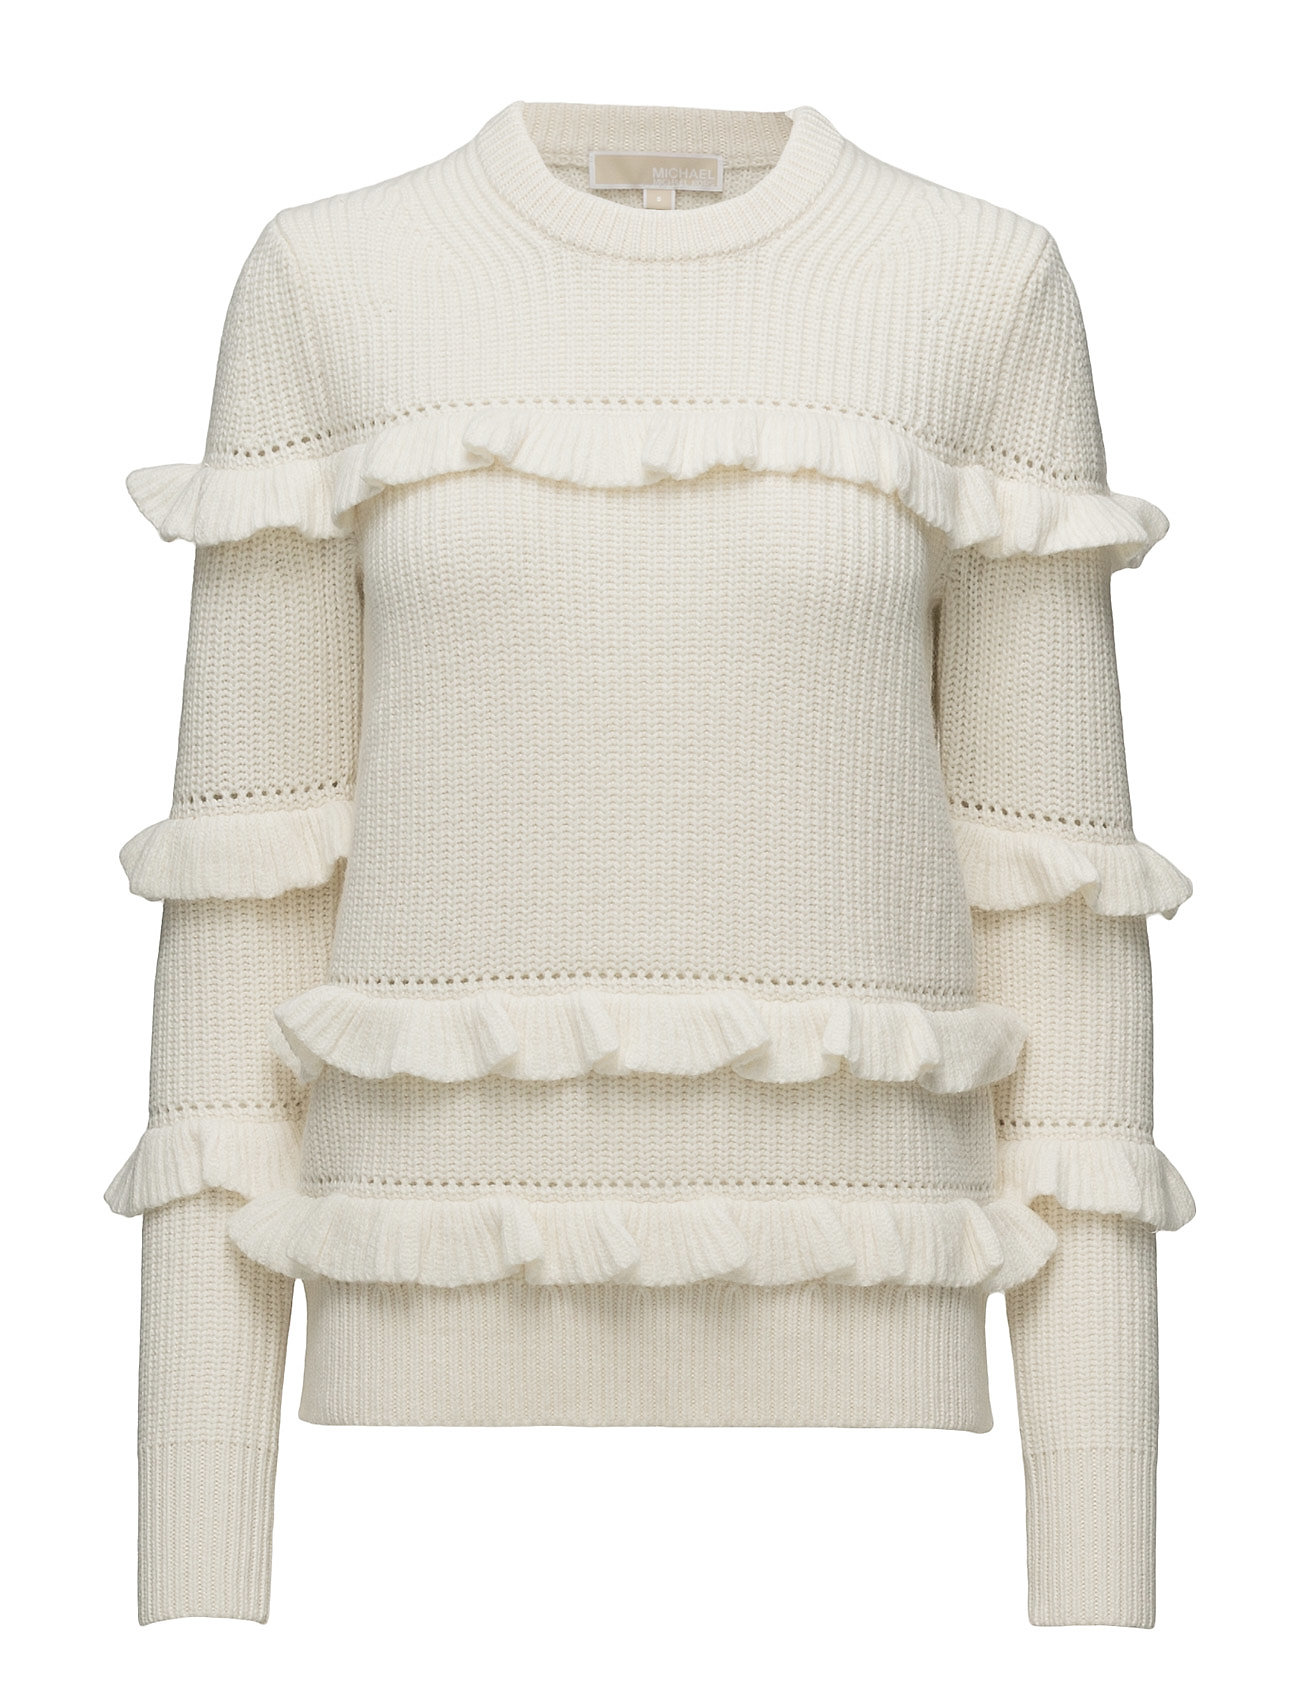 Michael Kors RIB RUFFLE SWEATER